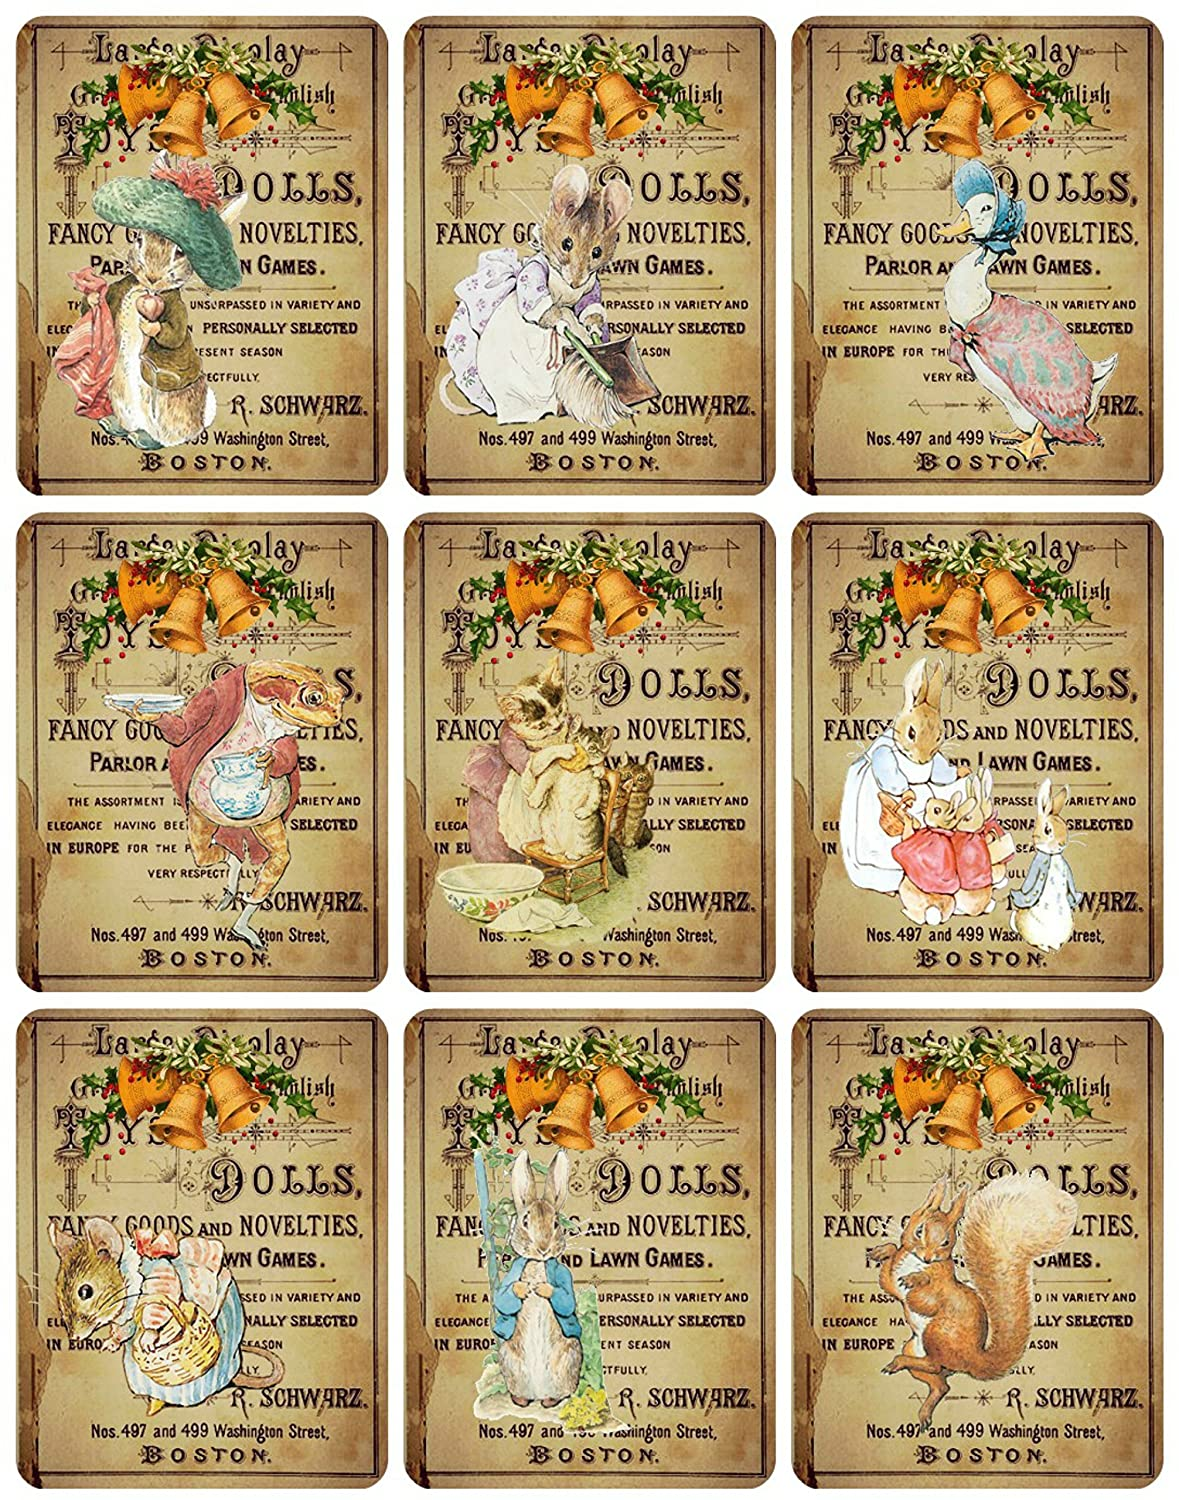 ATC Gift Tags 8.5 x 11 Digital Scrapbooking Peter Rabbit Collection Vintage Victorian Christmas Graphics Collage Sheet Prints